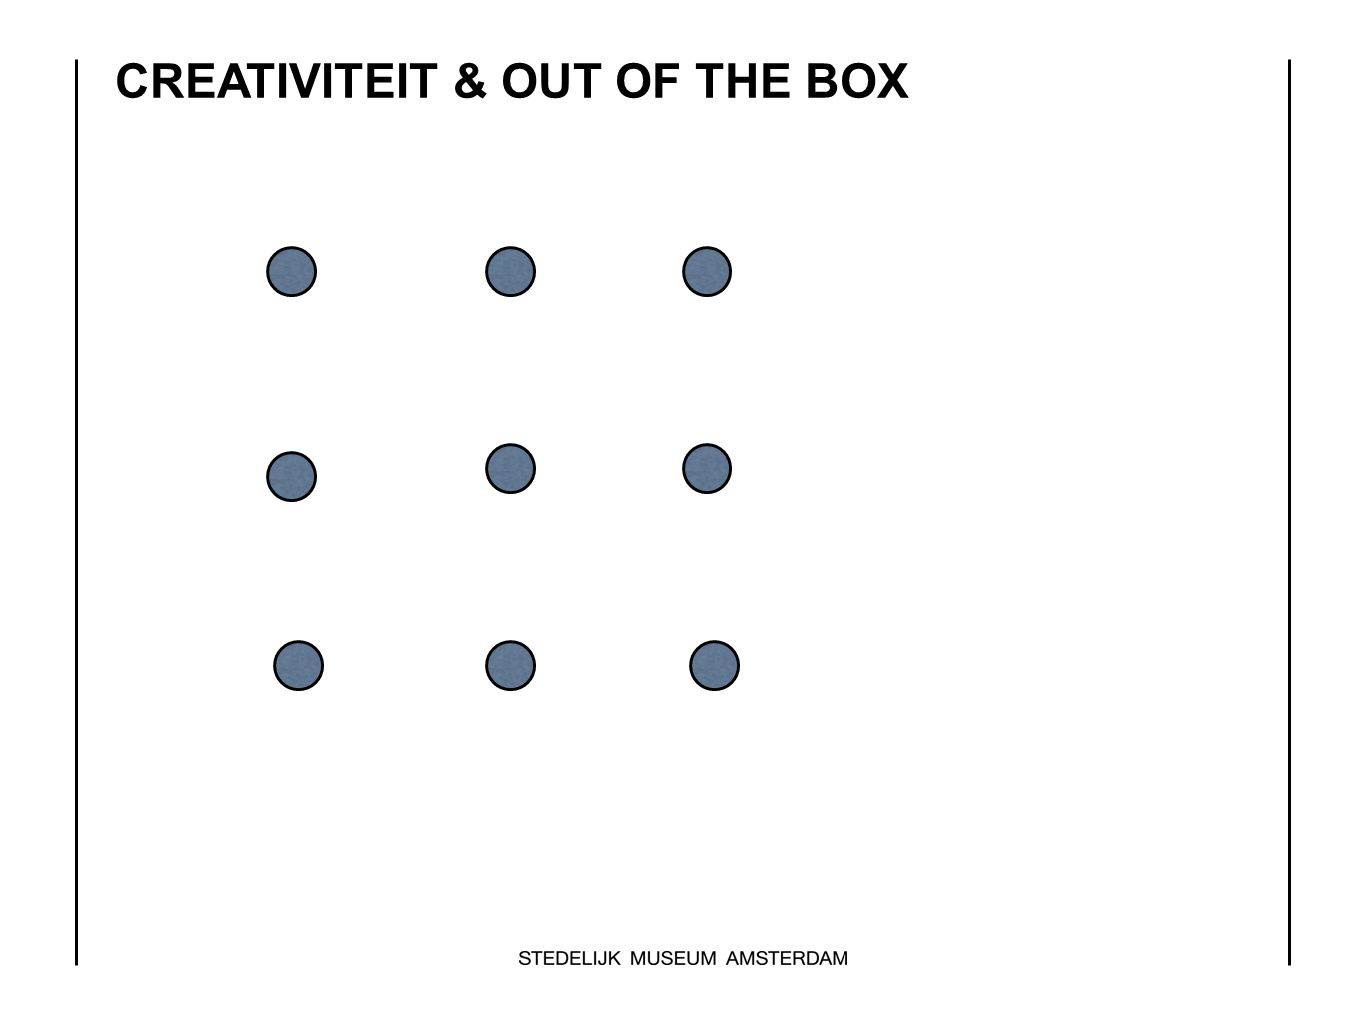 CREATIVITEIT & OUT OF THE BOX